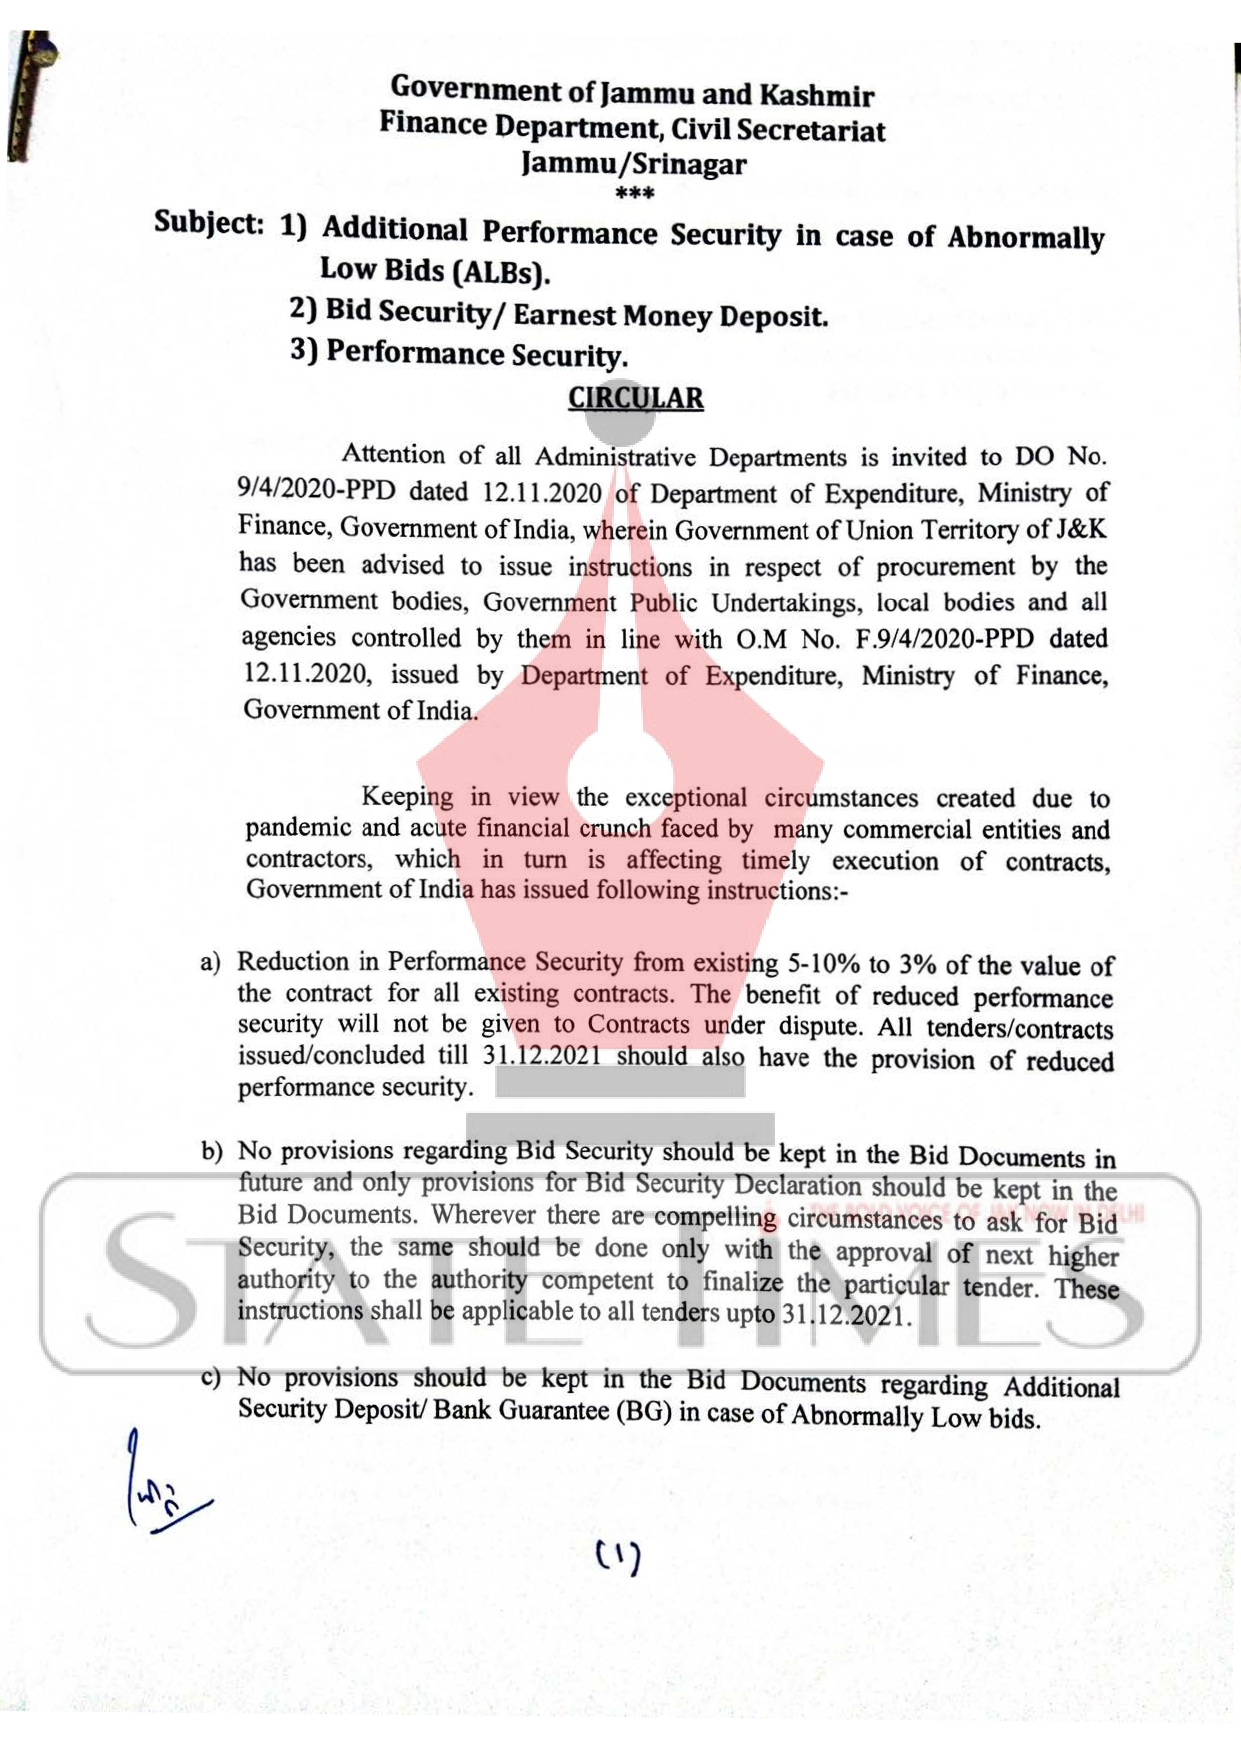 J&K Finance Deptt issued instructions for timely execution of contracts